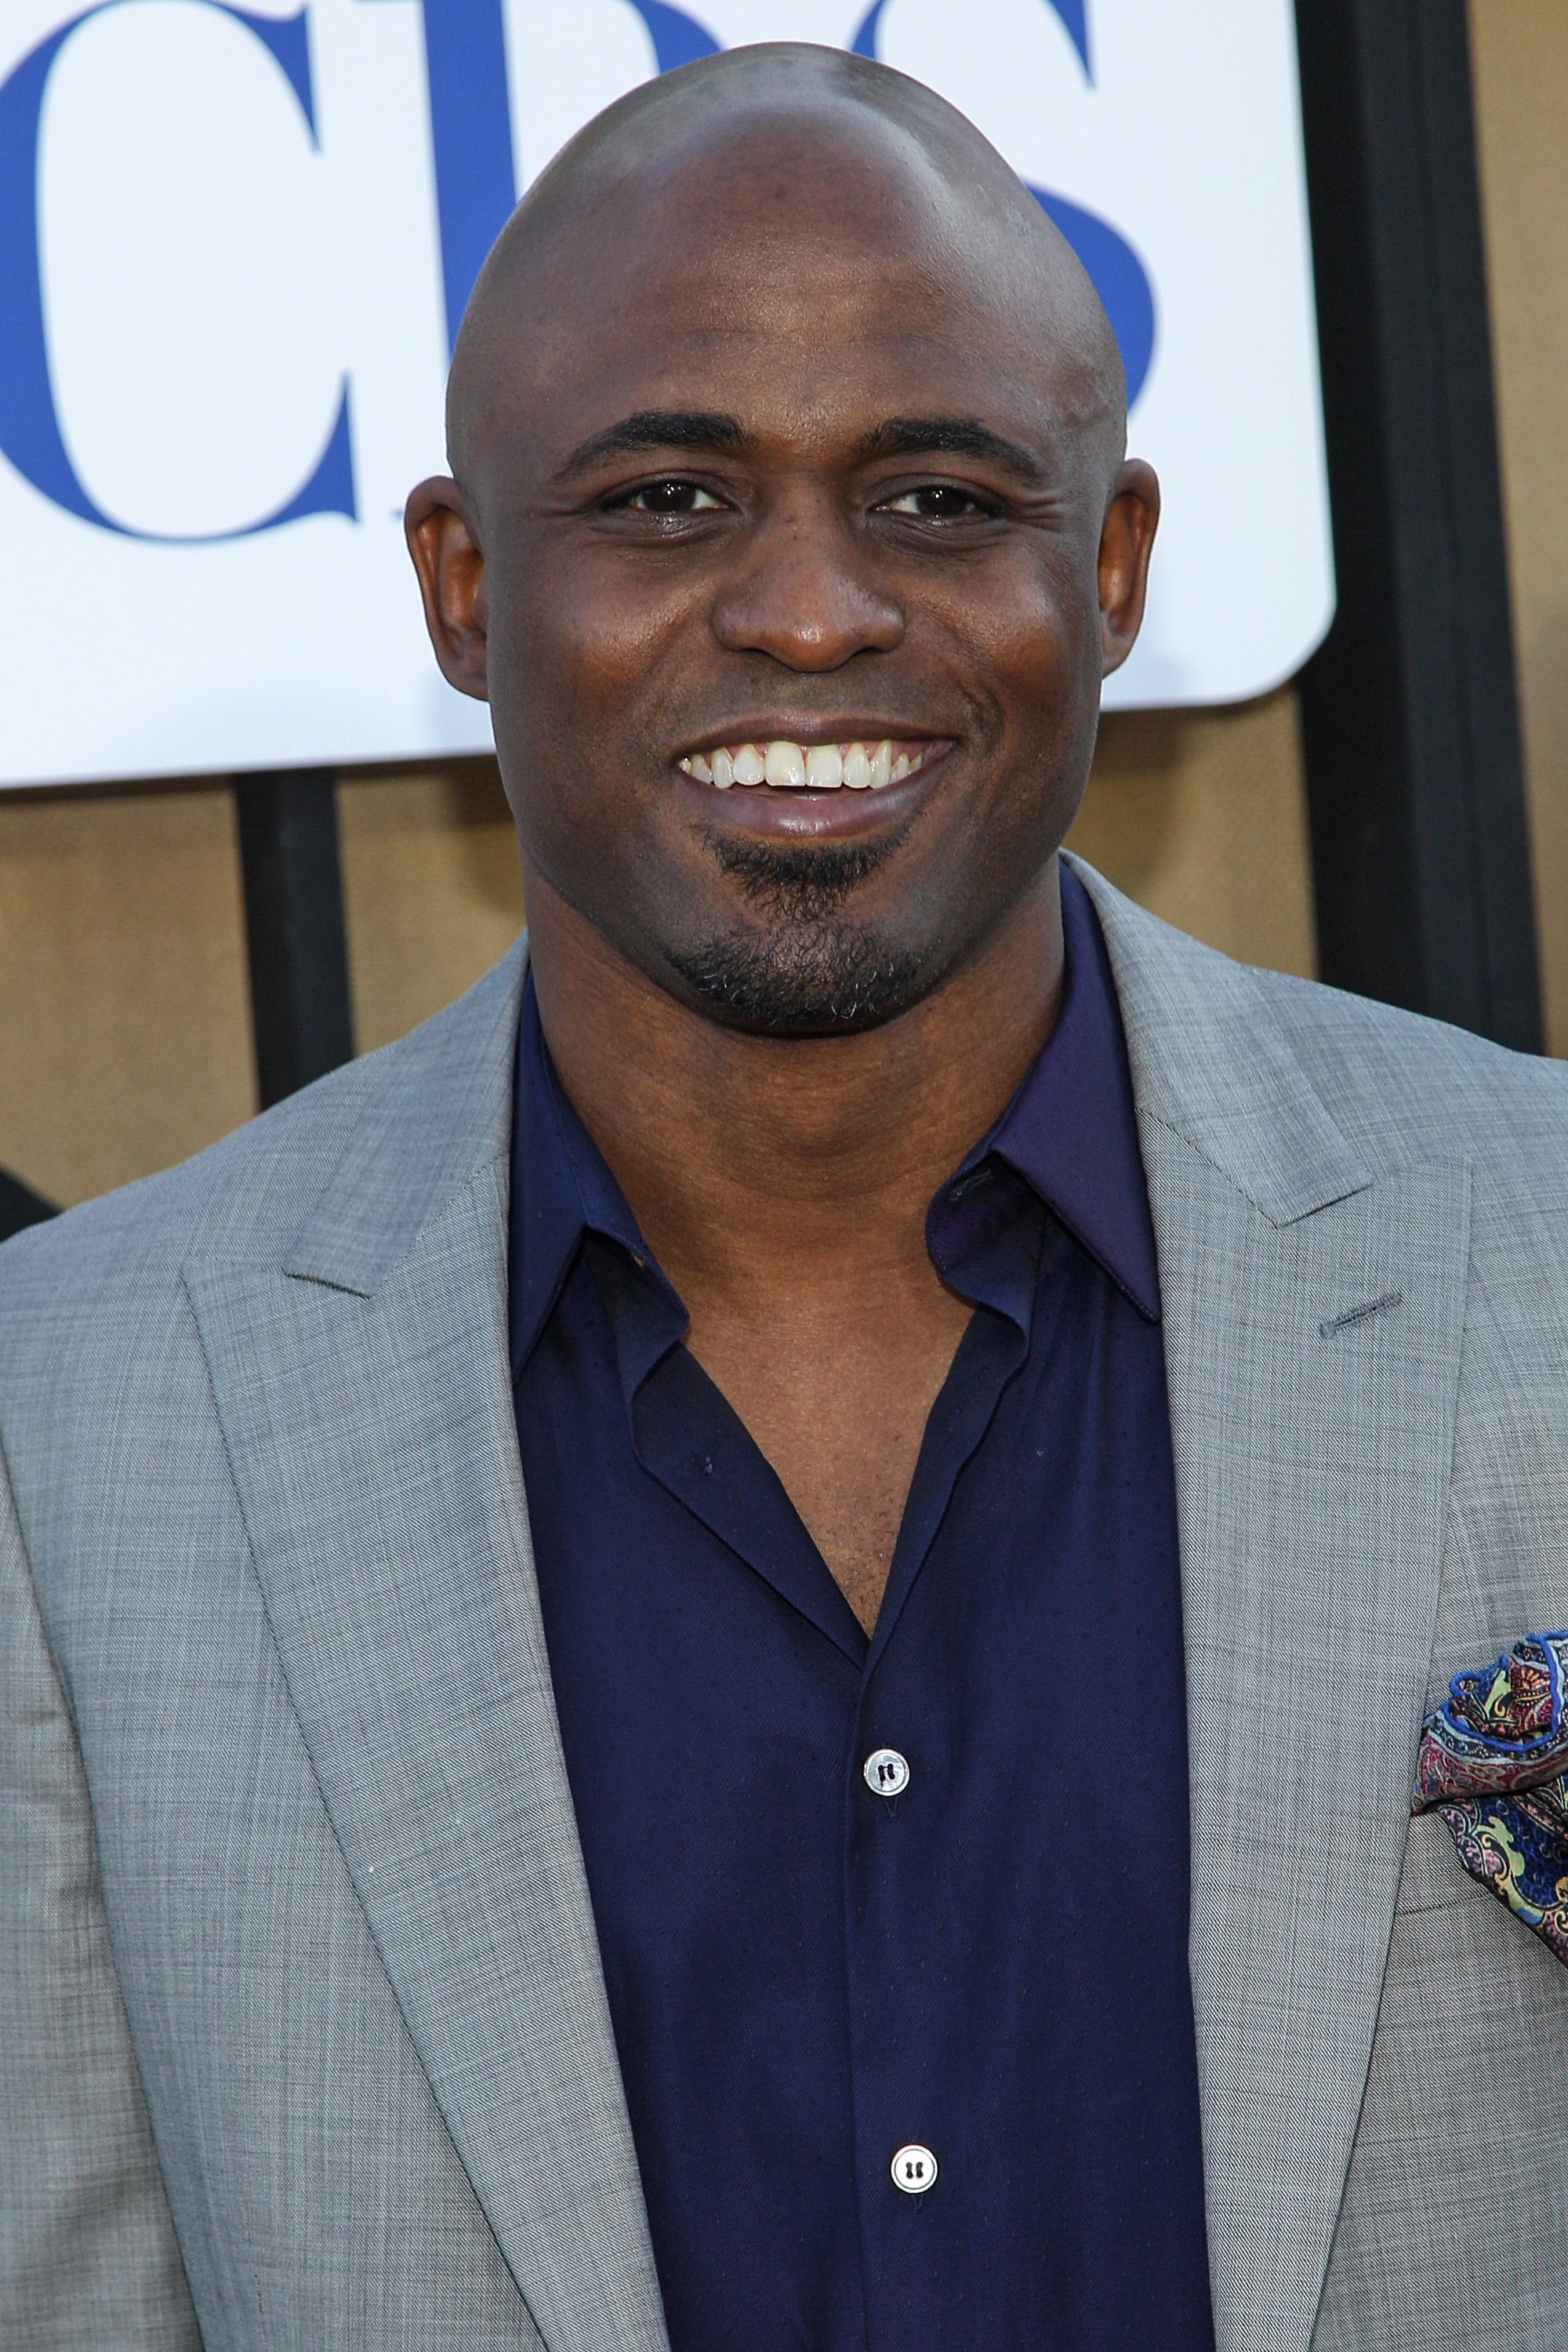 Wayne Brady was a guest at the party hosted by The CW, CBS, and Showtime.